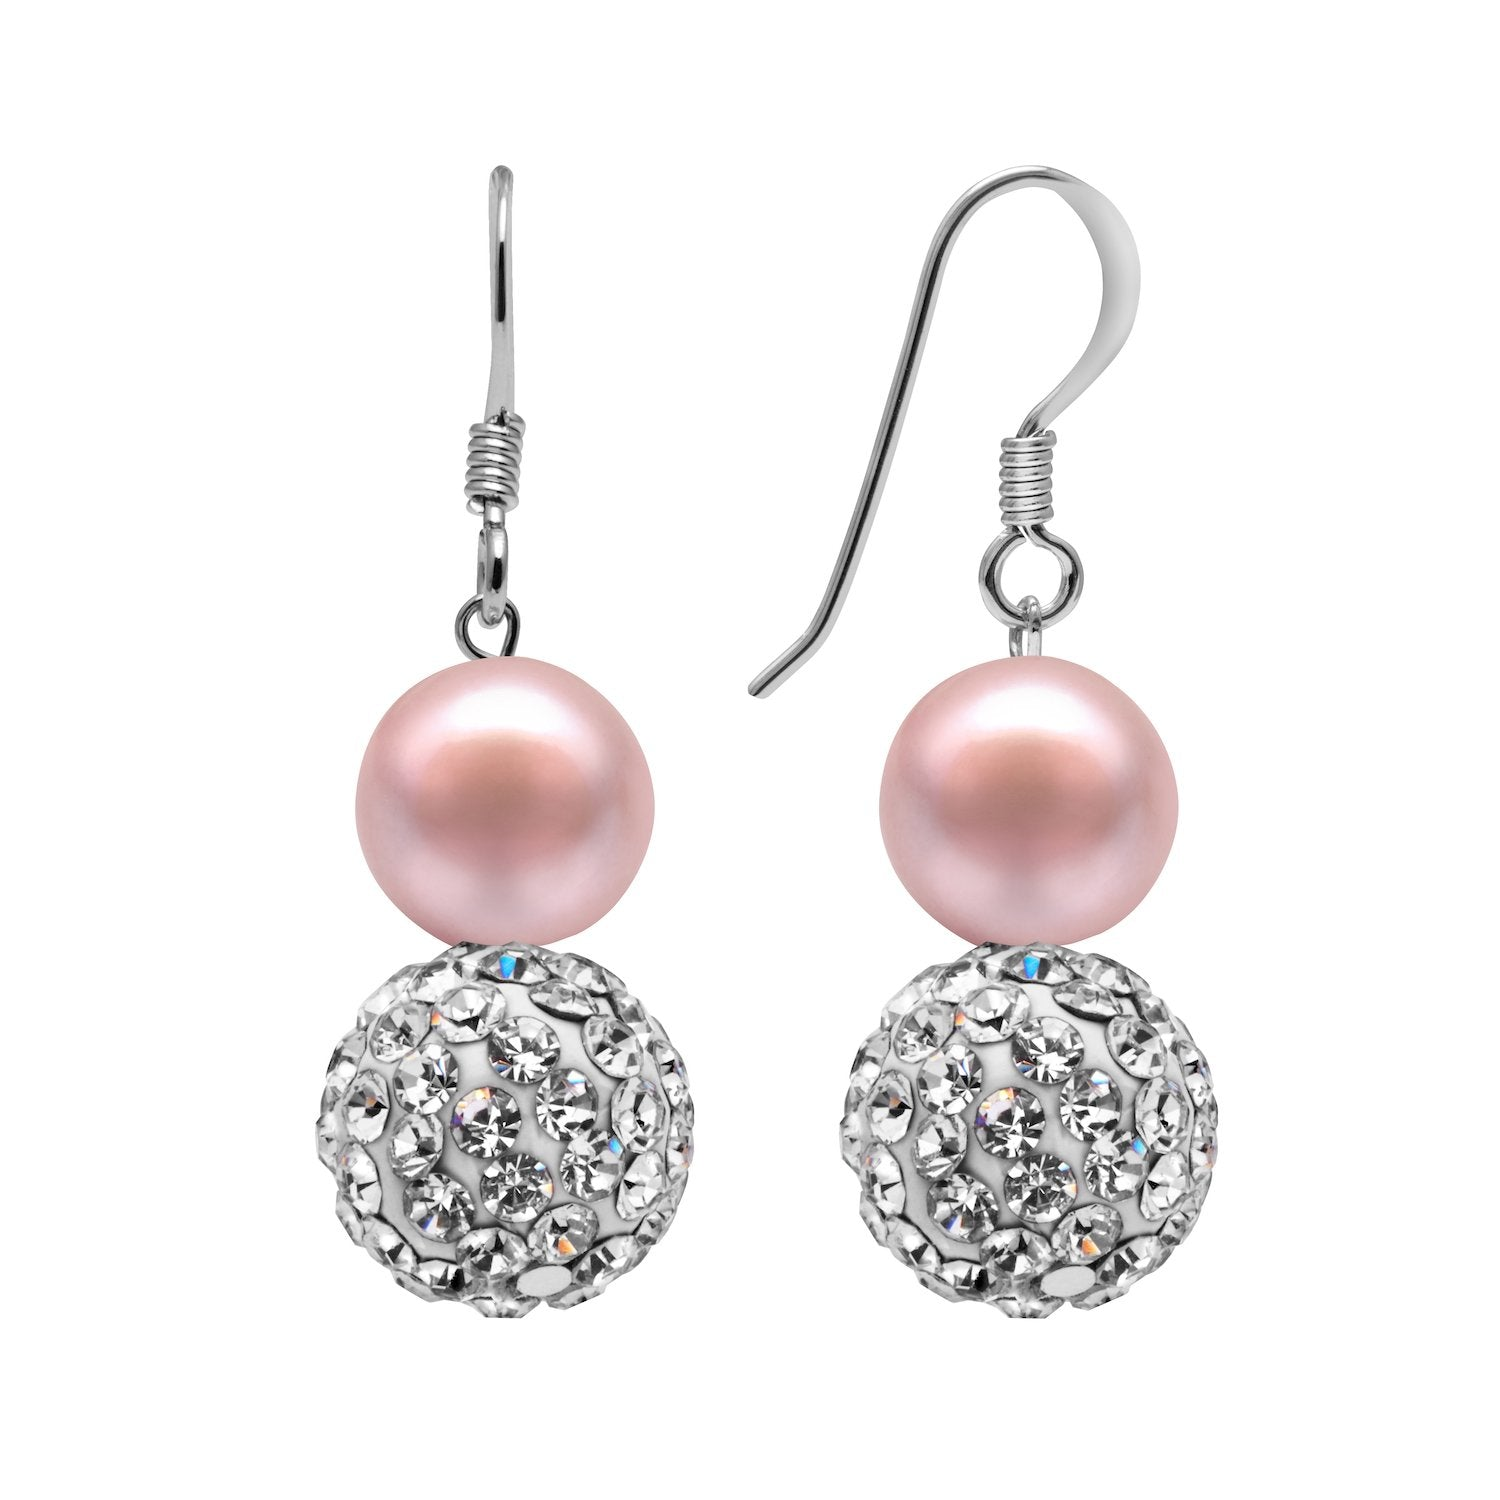 Kyoto Pearl Pink Freshwater Pearl & Pave Crystal Ball Drop Earrings in 925 Silver